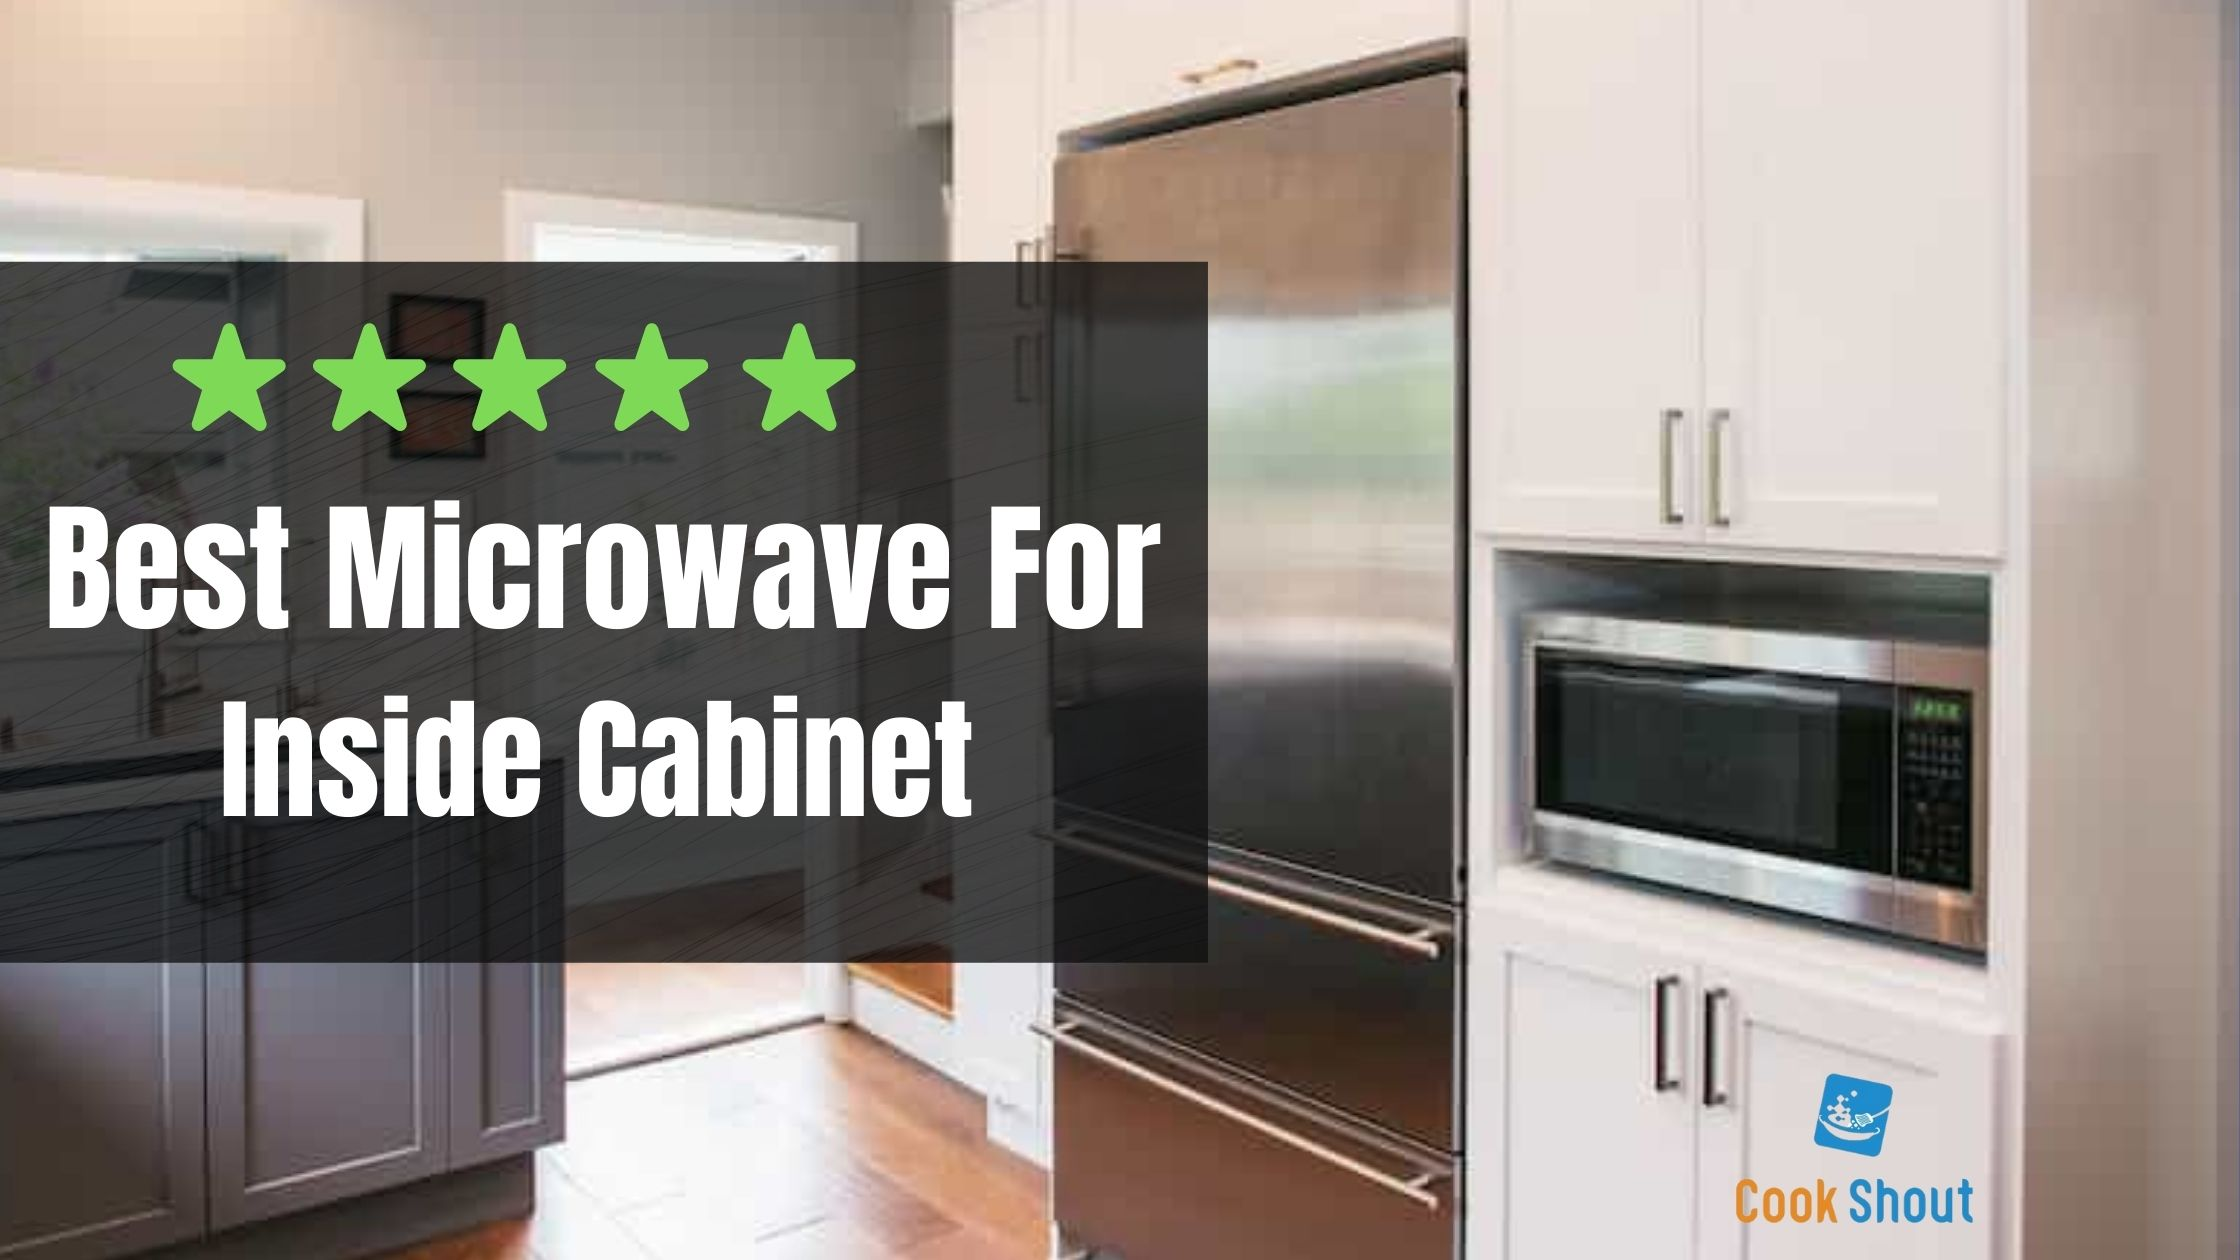 Best Microwave For Inside Cabinet